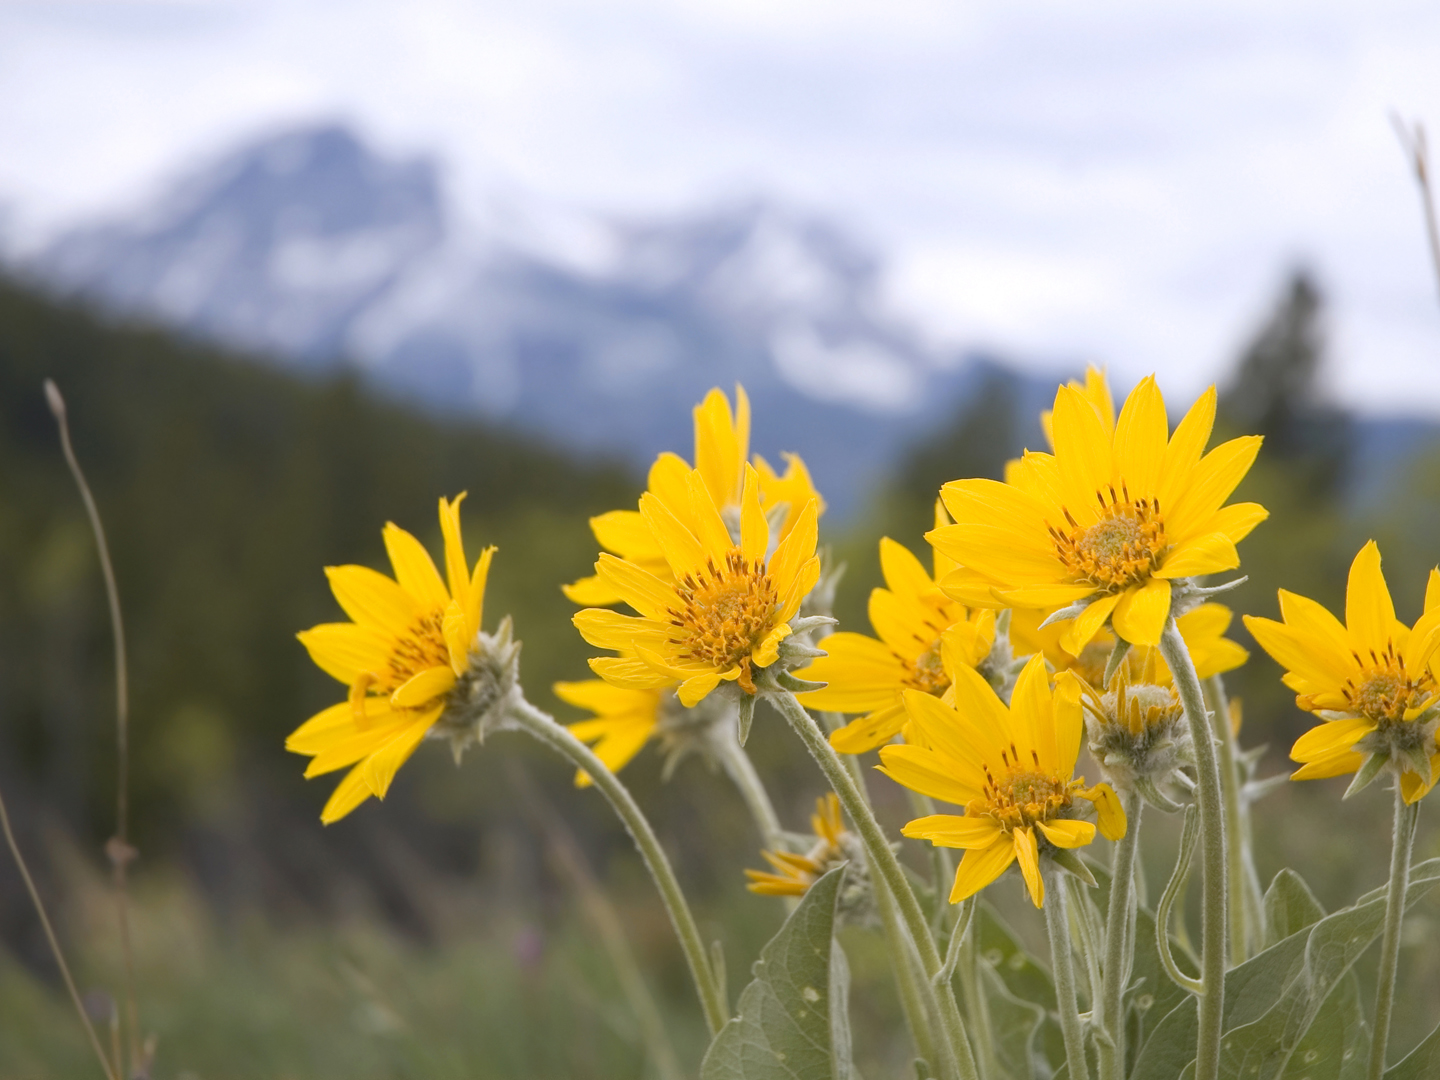 arnica uses, doses, interactions, remedy and benefits | dr. weil, Skeleton